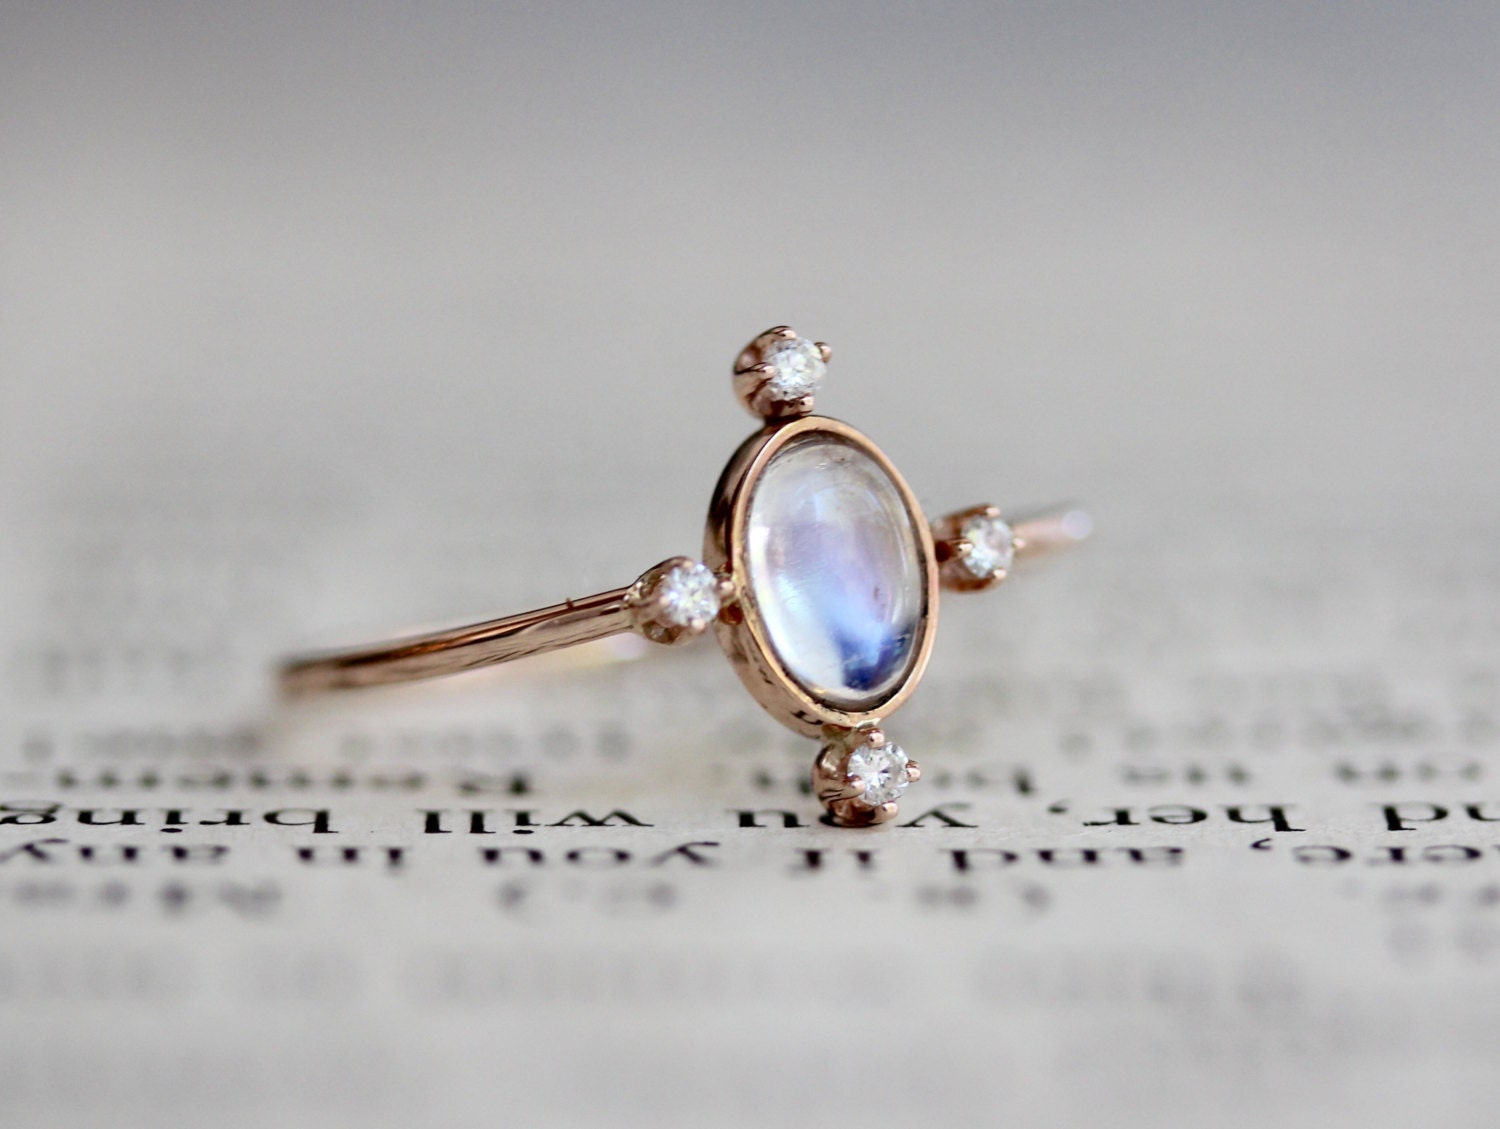 moonstone rings with stars - photo #23